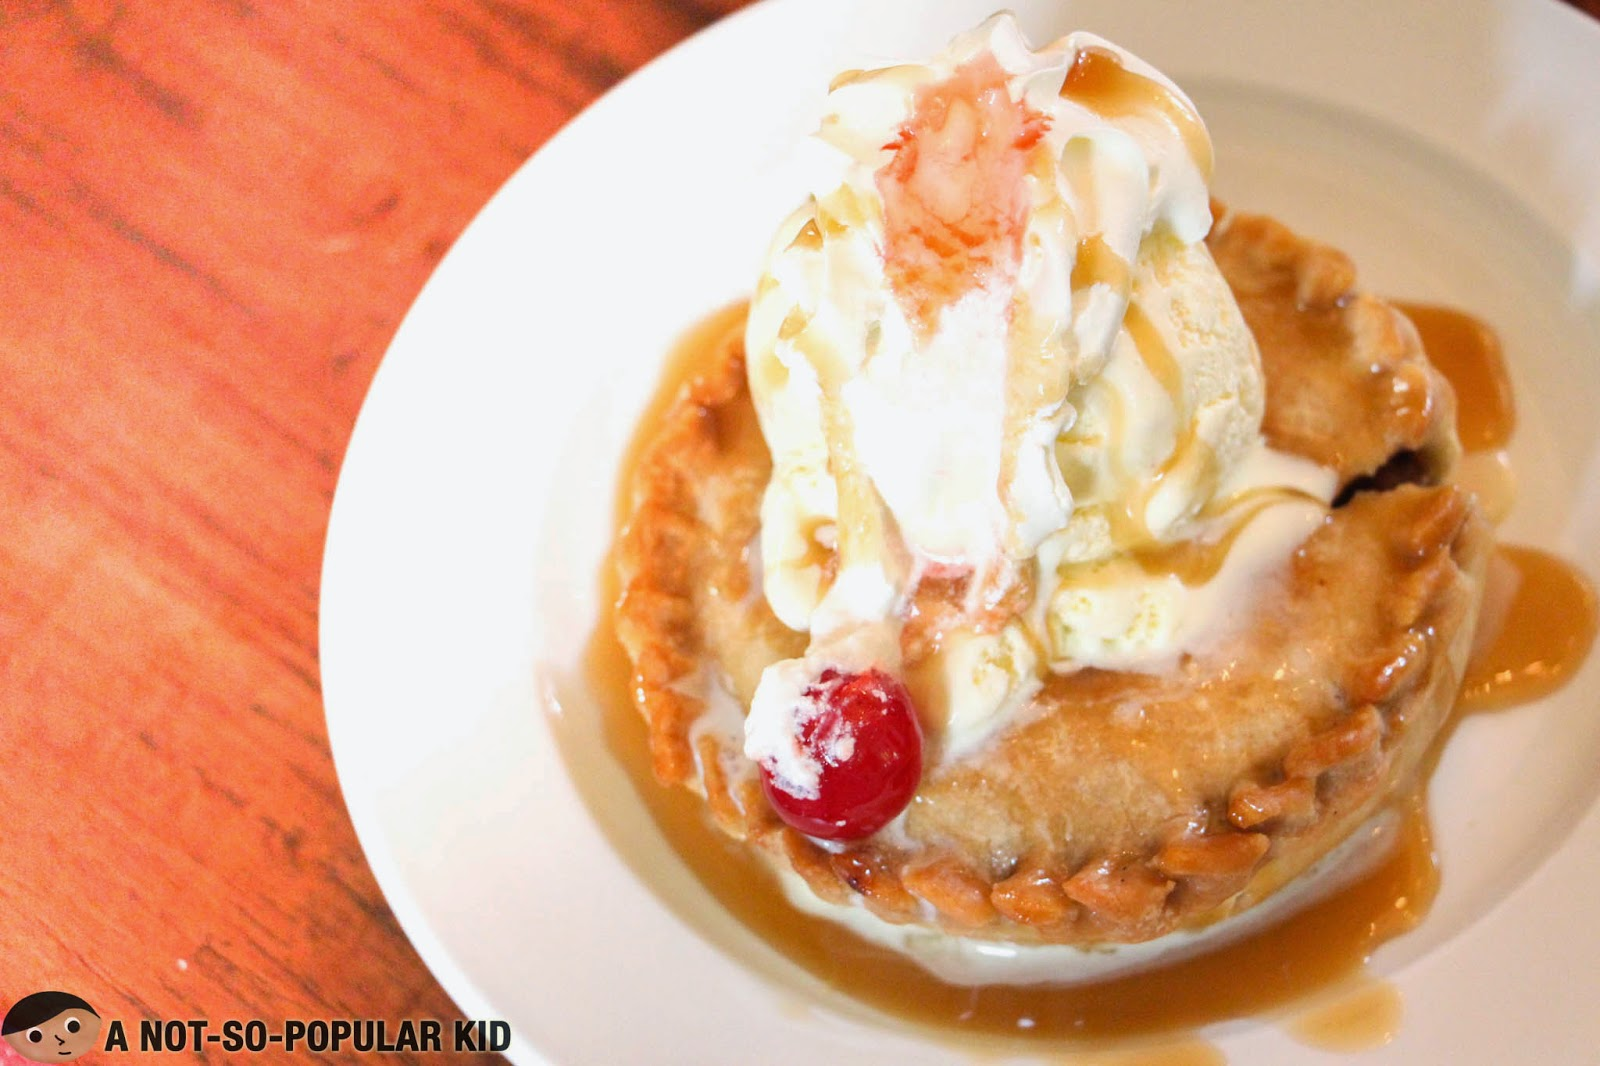 The sweet apple pie ala mode of Bag of Beans in Tagaytay